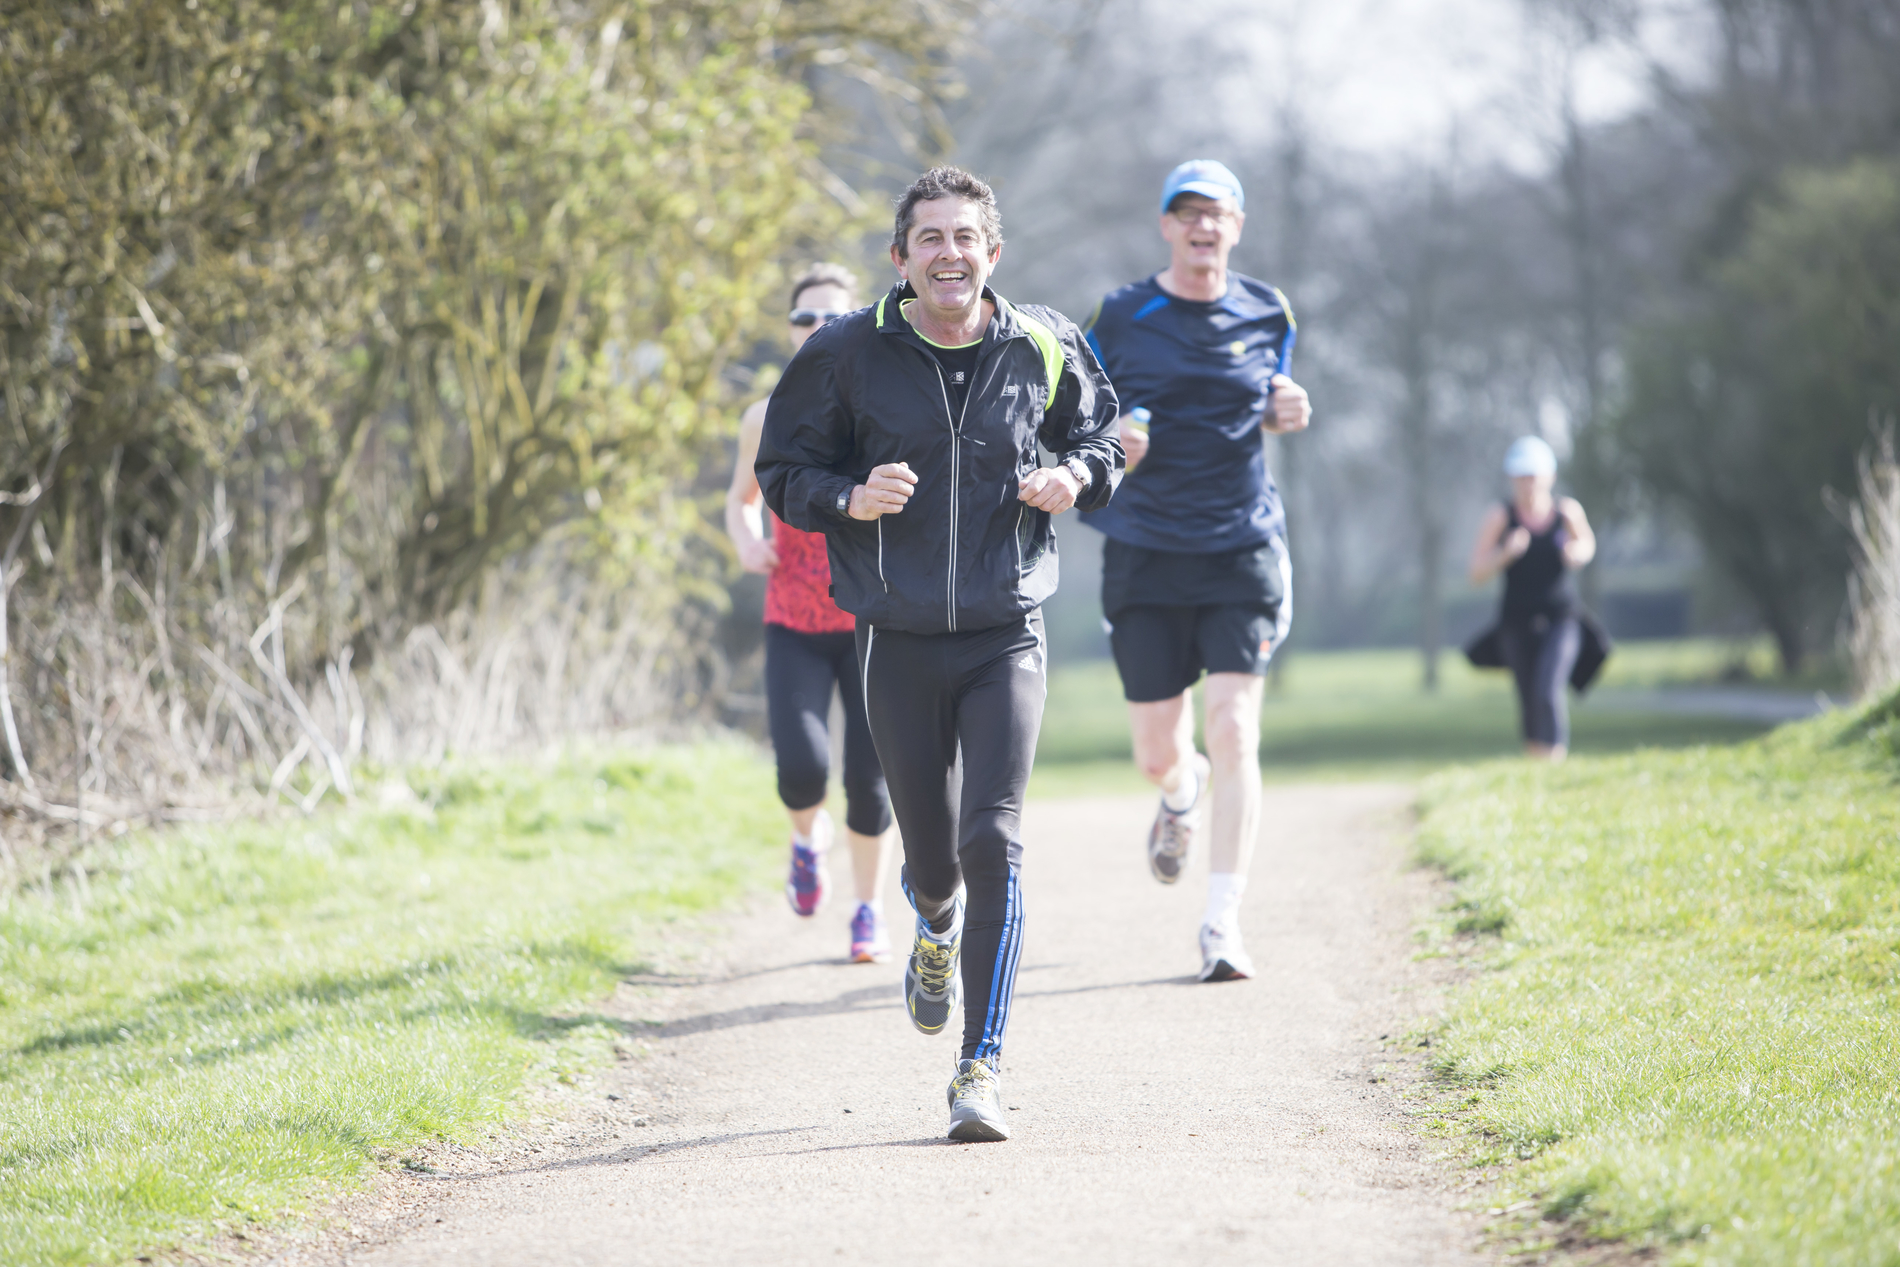 Parks_and_Run-people-running-adults-sport-activity-smile